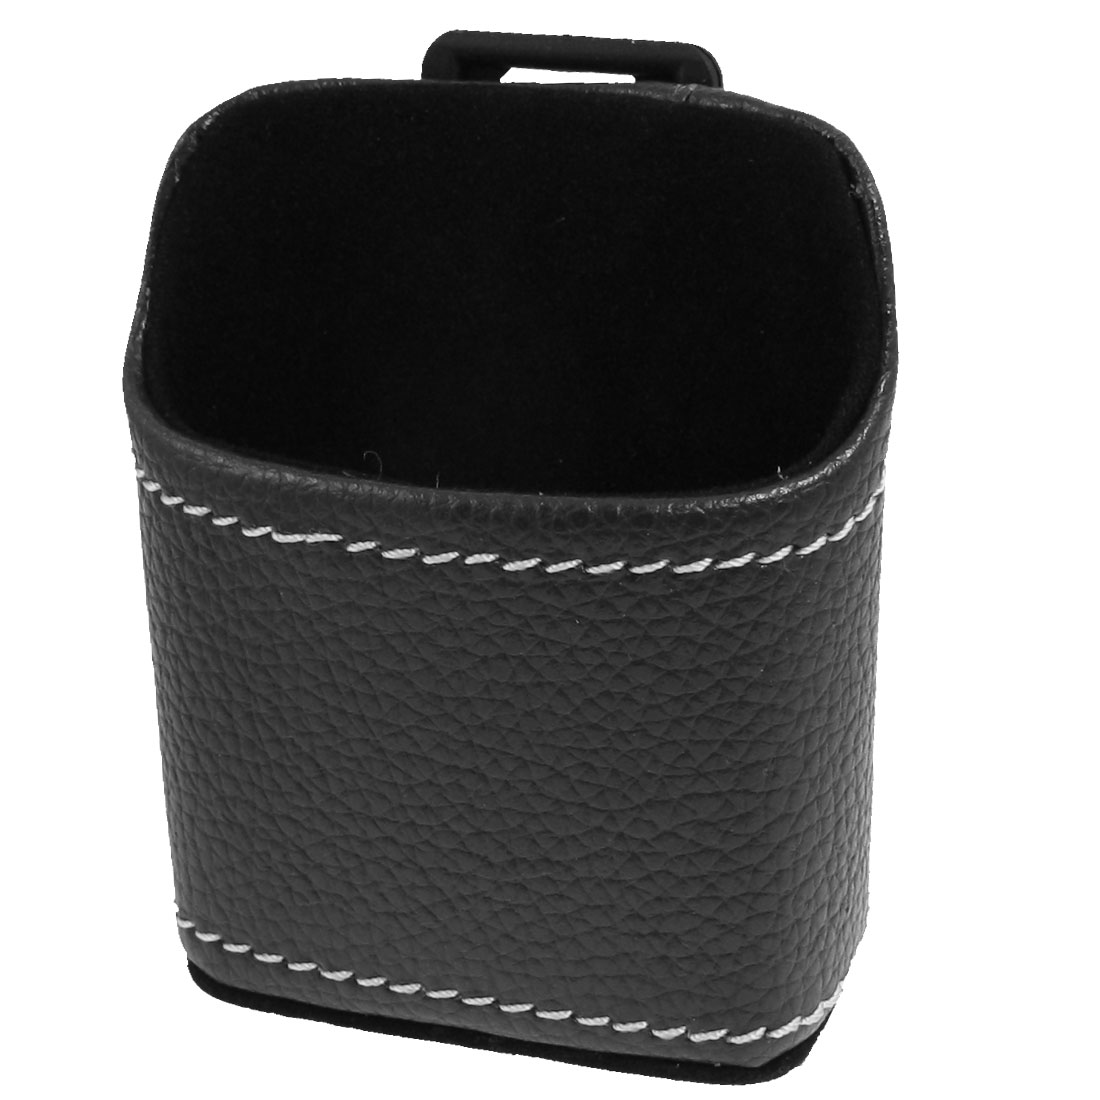 Car Auto Air Vent Black Faux Leather Cell Phone Pouch Holder Bag